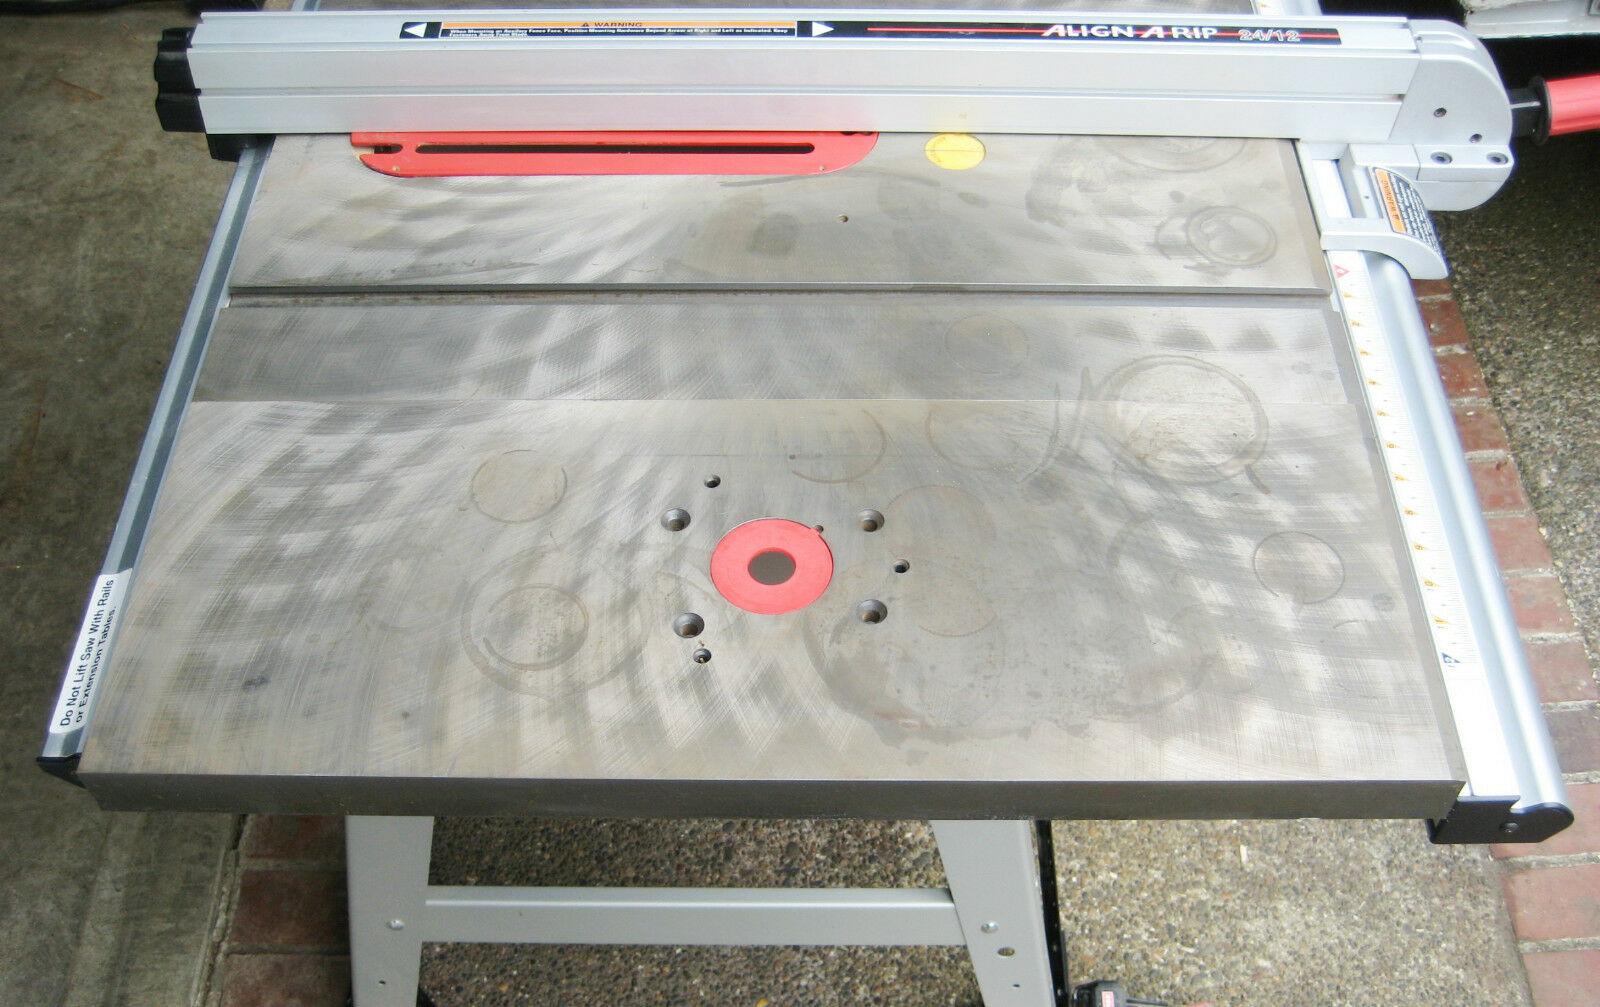 Cast iron 10 x 27 router table extension wing for table saw sears 1 of 12 see more greentooth Images